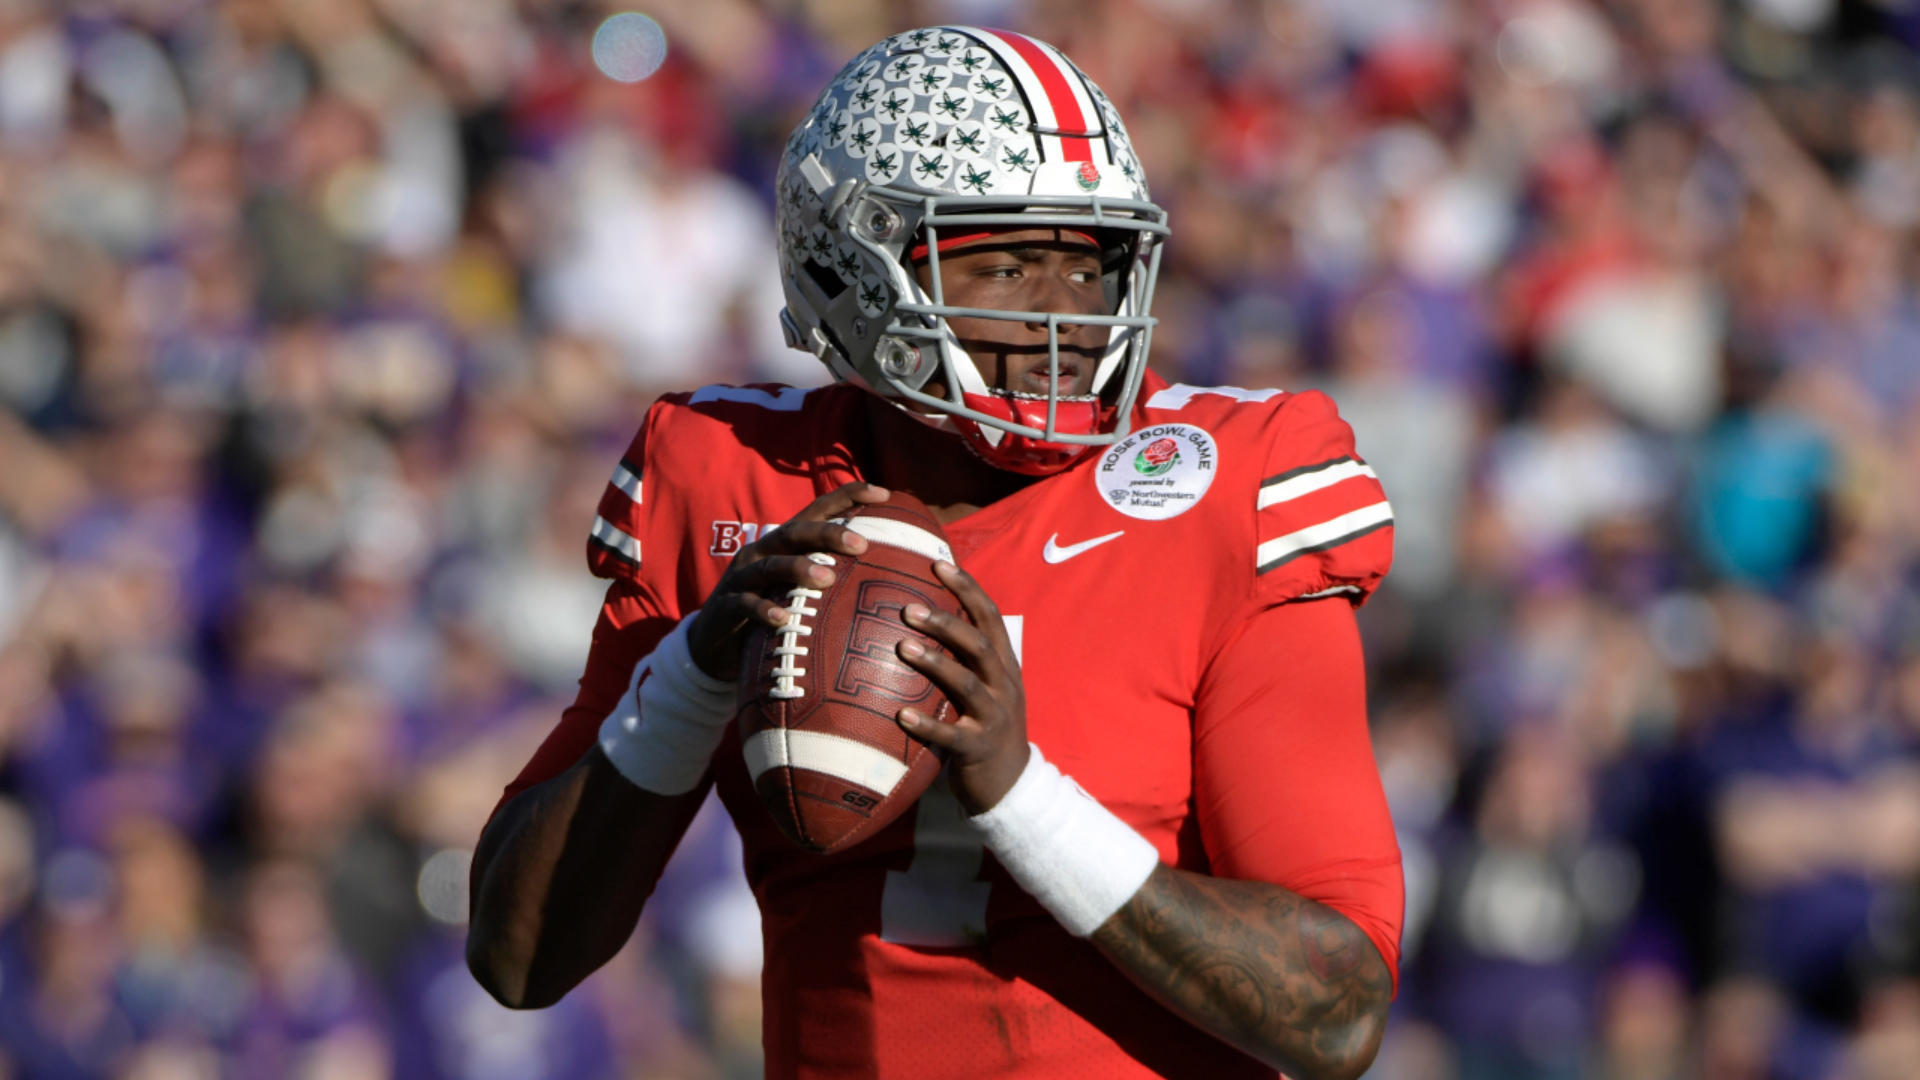 2019 NFL Draft: Top prospect Dwayne Haskins reveals the five teams that have shown the most interest in him